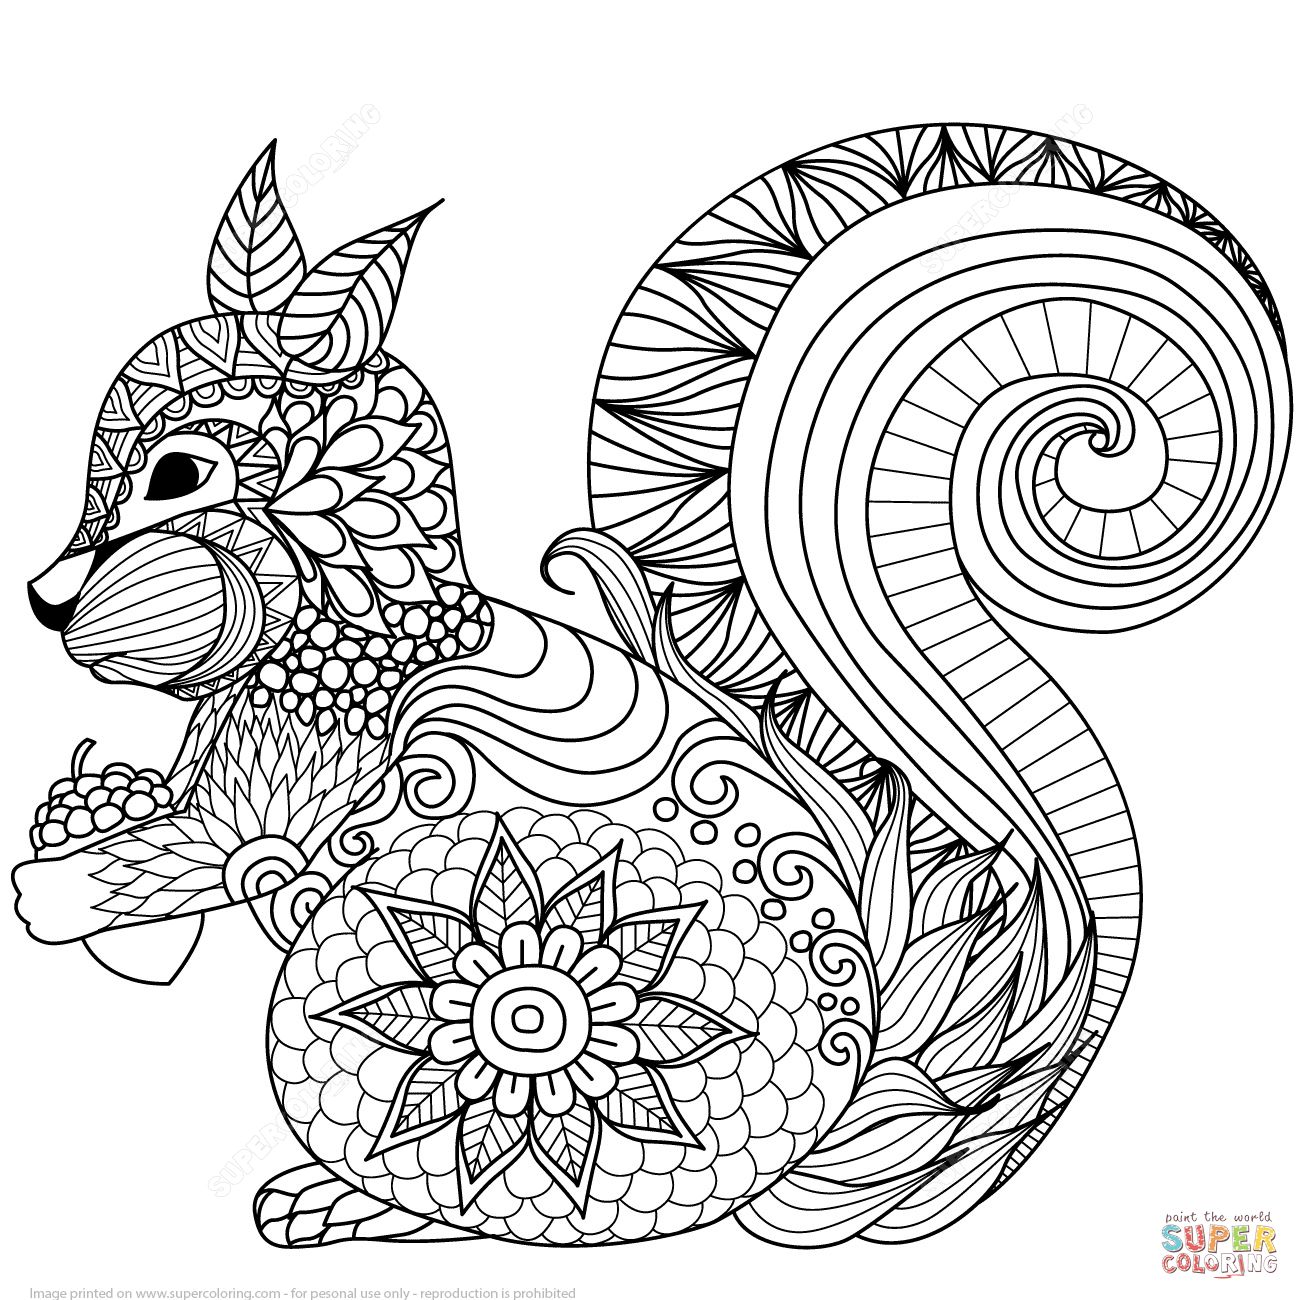 Lovely Squirrel Zentangle coloring